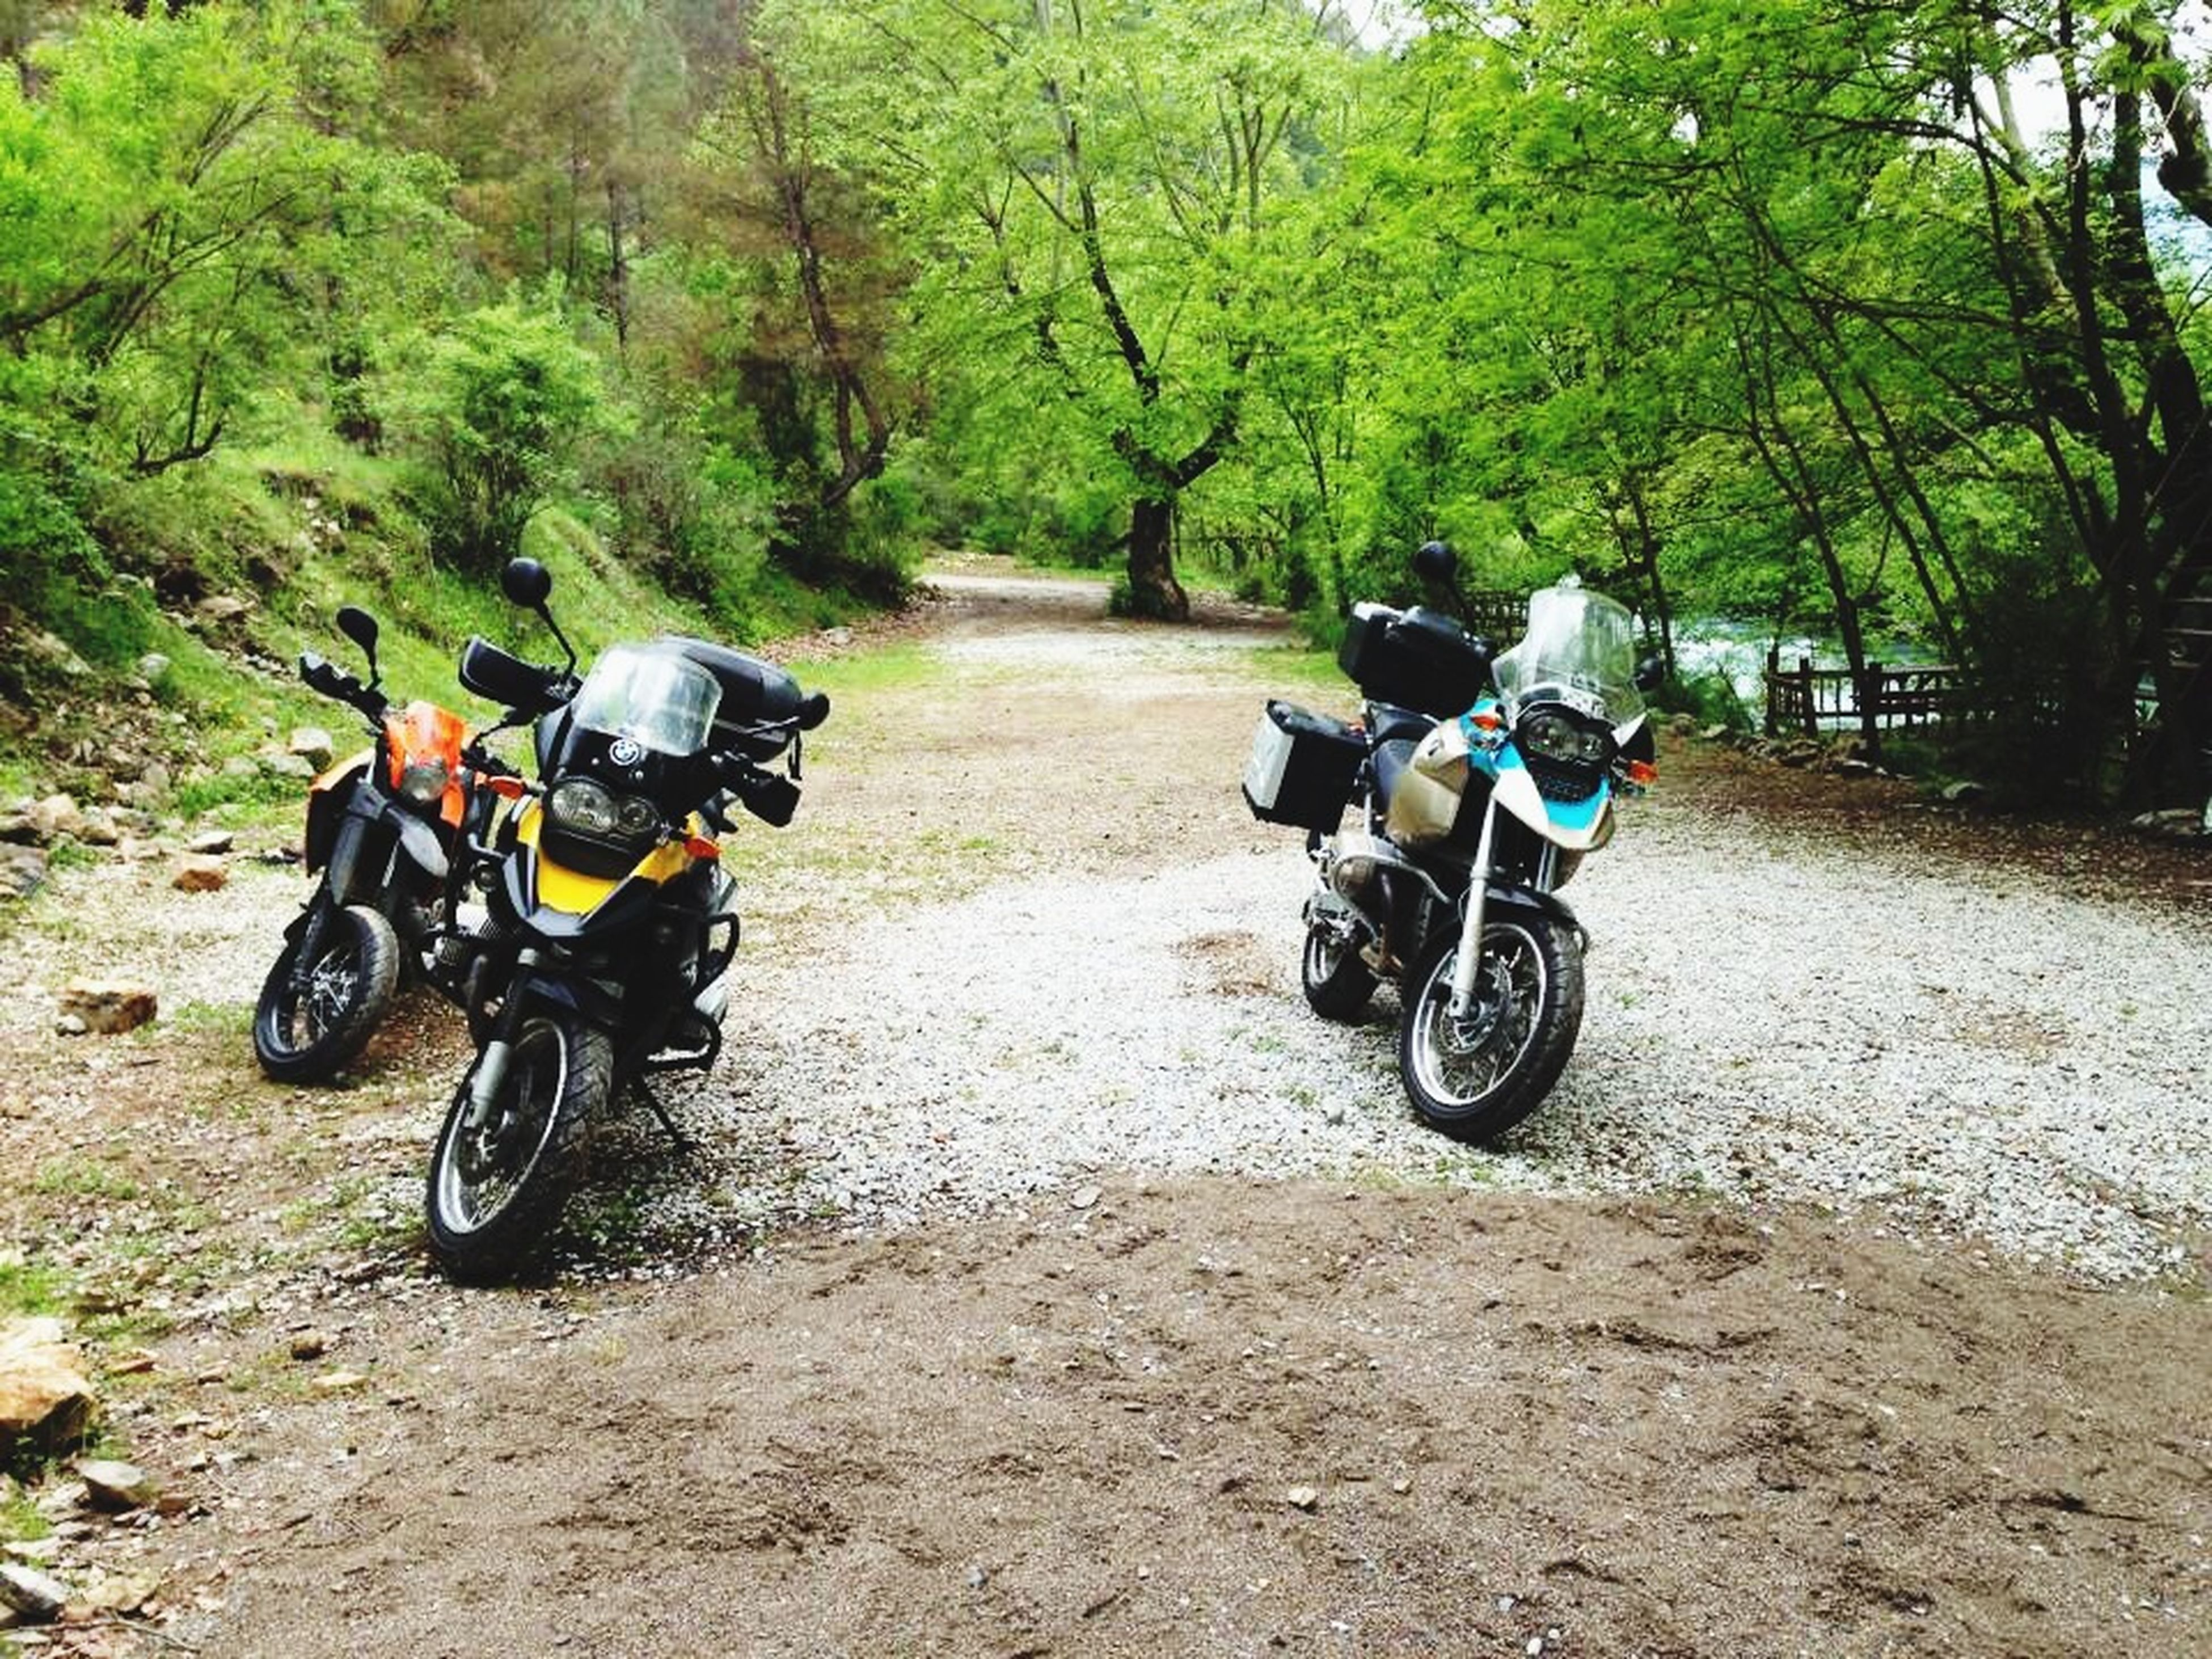 bicycle, transportation, land vehicle, mode of transport, riding, tree, motorcycle, men, cycling, lifestyles, leisure activity, travel, on the move, stationary, parked, dirt road, full length, road